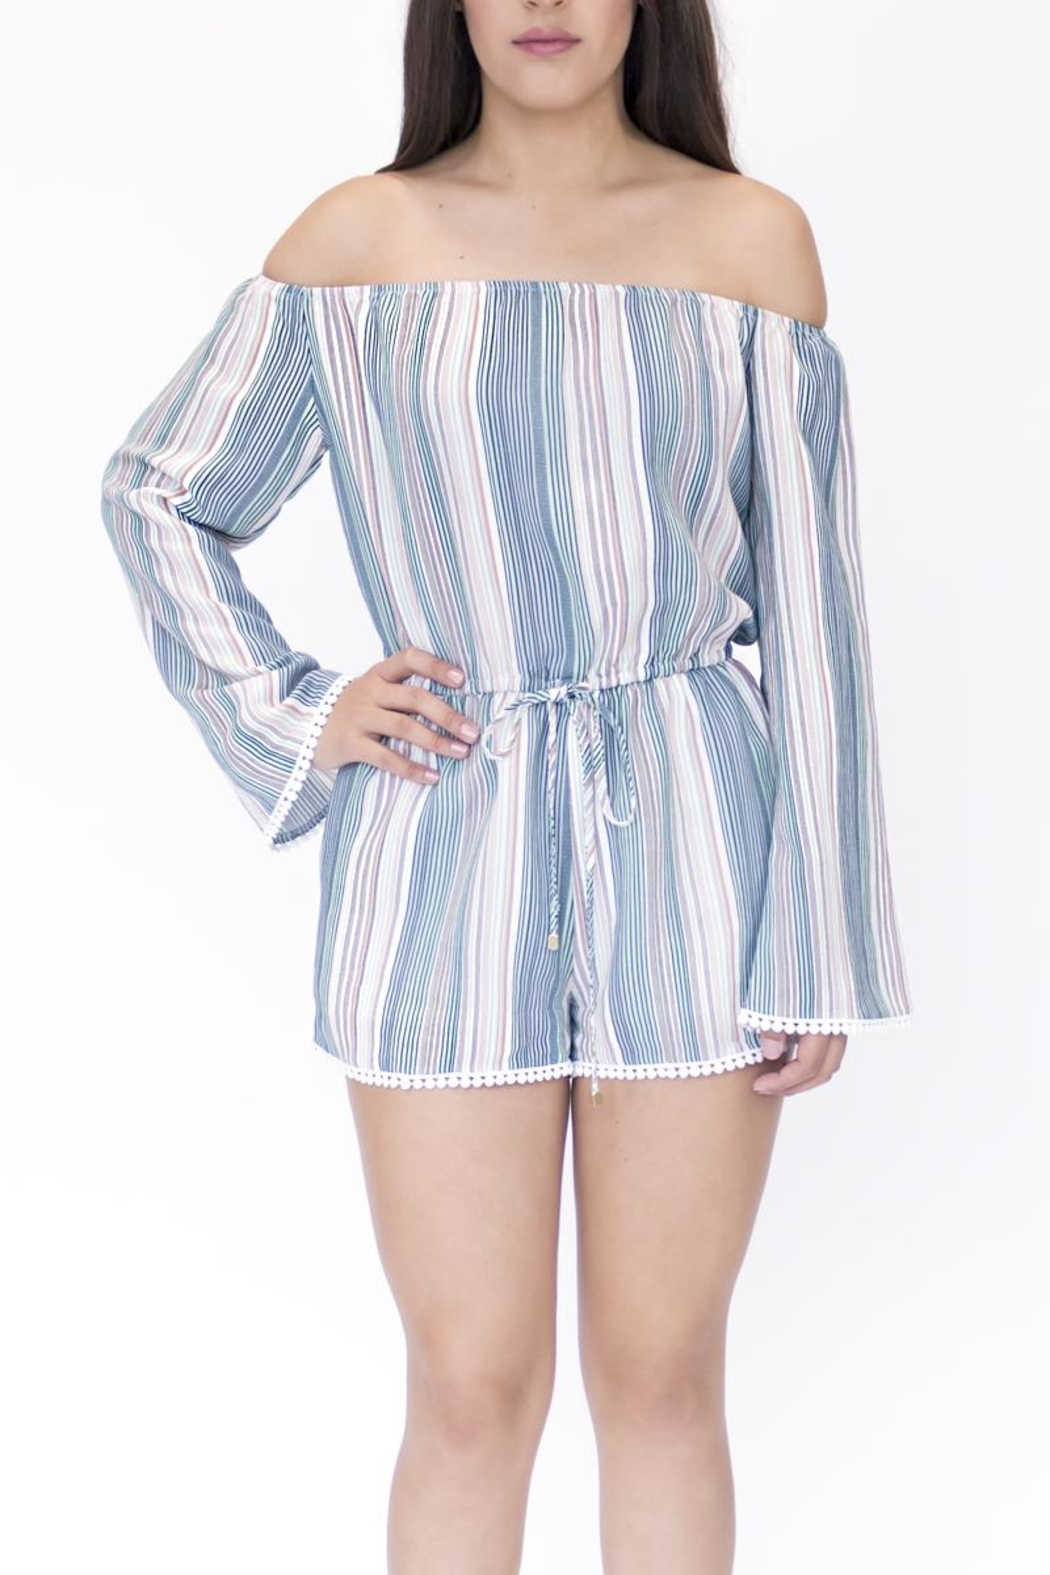 onetheland Multicolor Striped Romper - Main Image